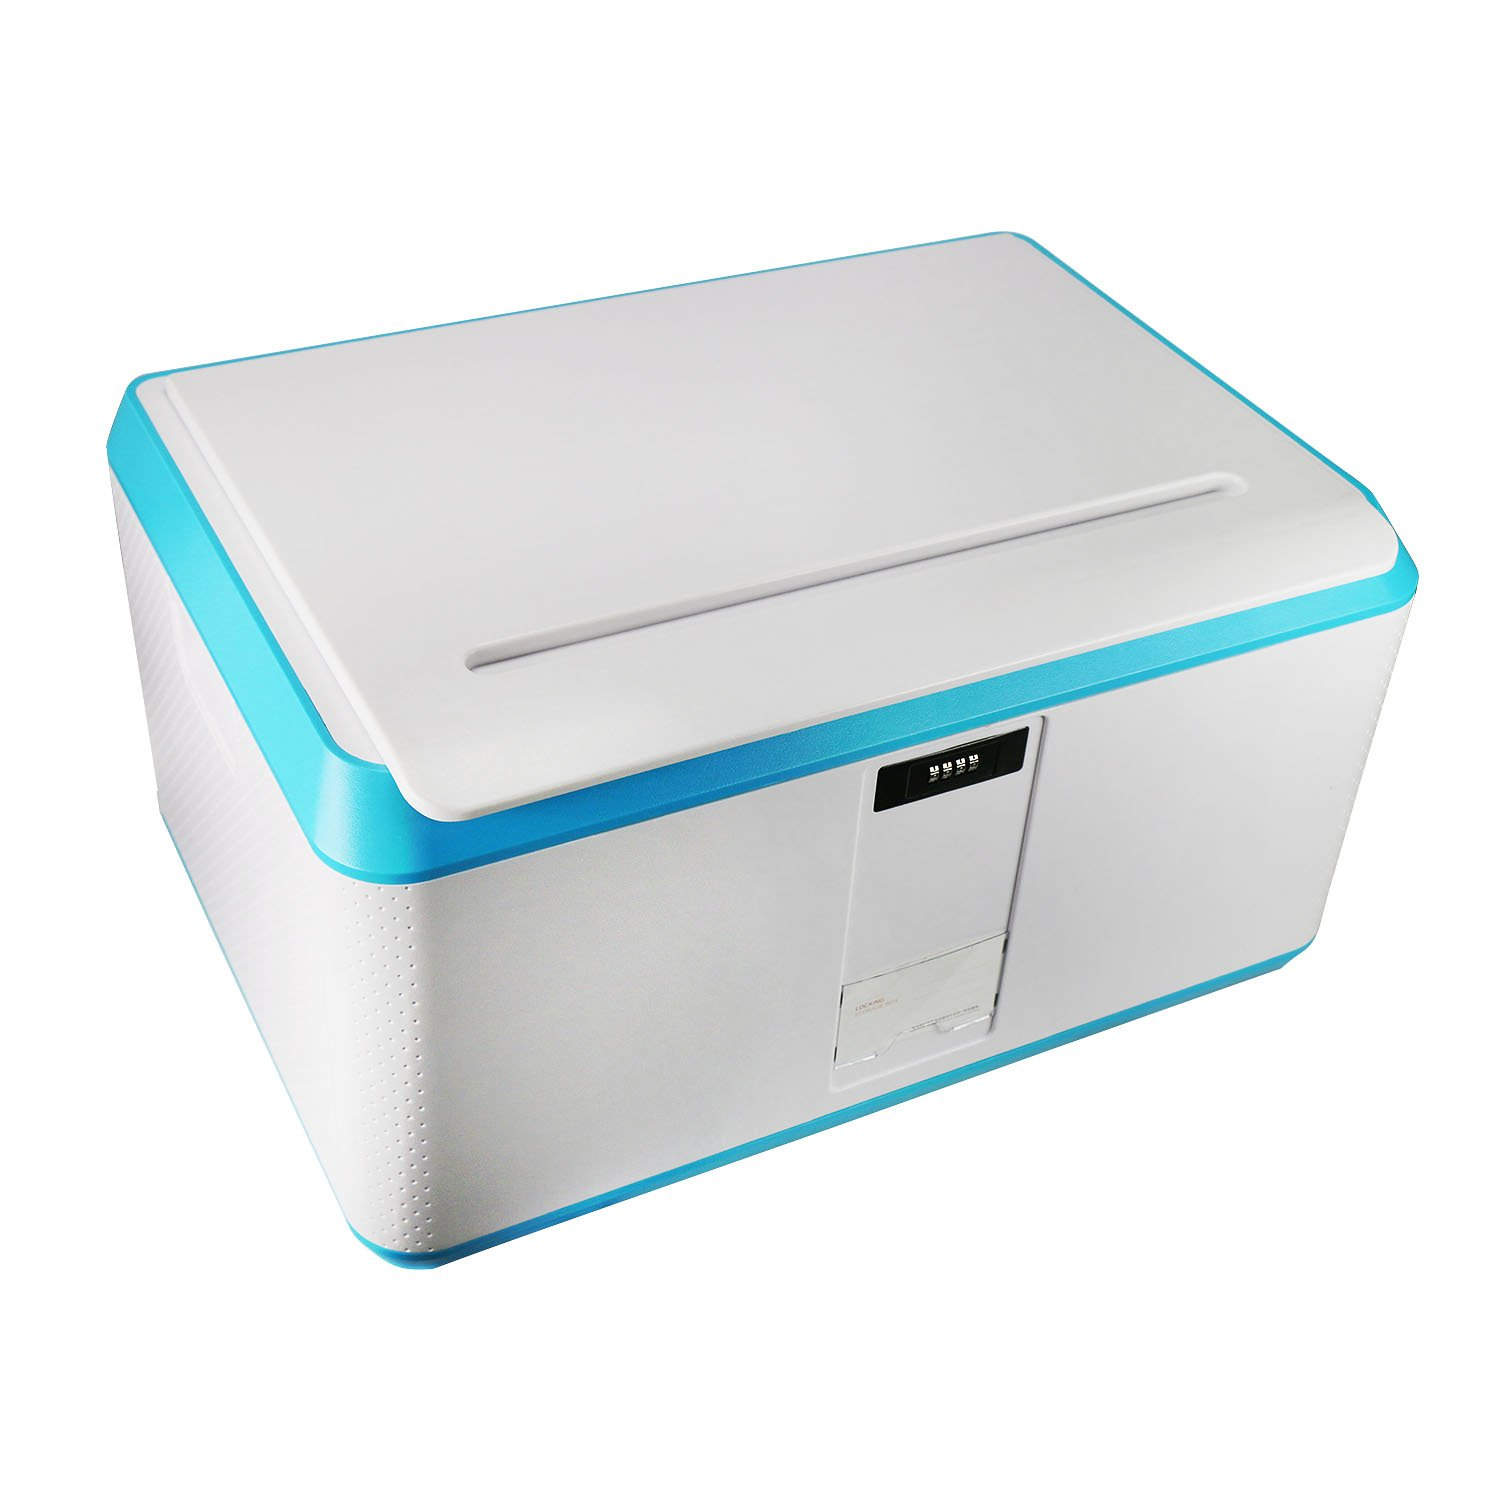 EVERTOP Extra Large Deck Box for Home, Office, Car, White with Code Lock (A-Green) by EVERTOP (Image #2)